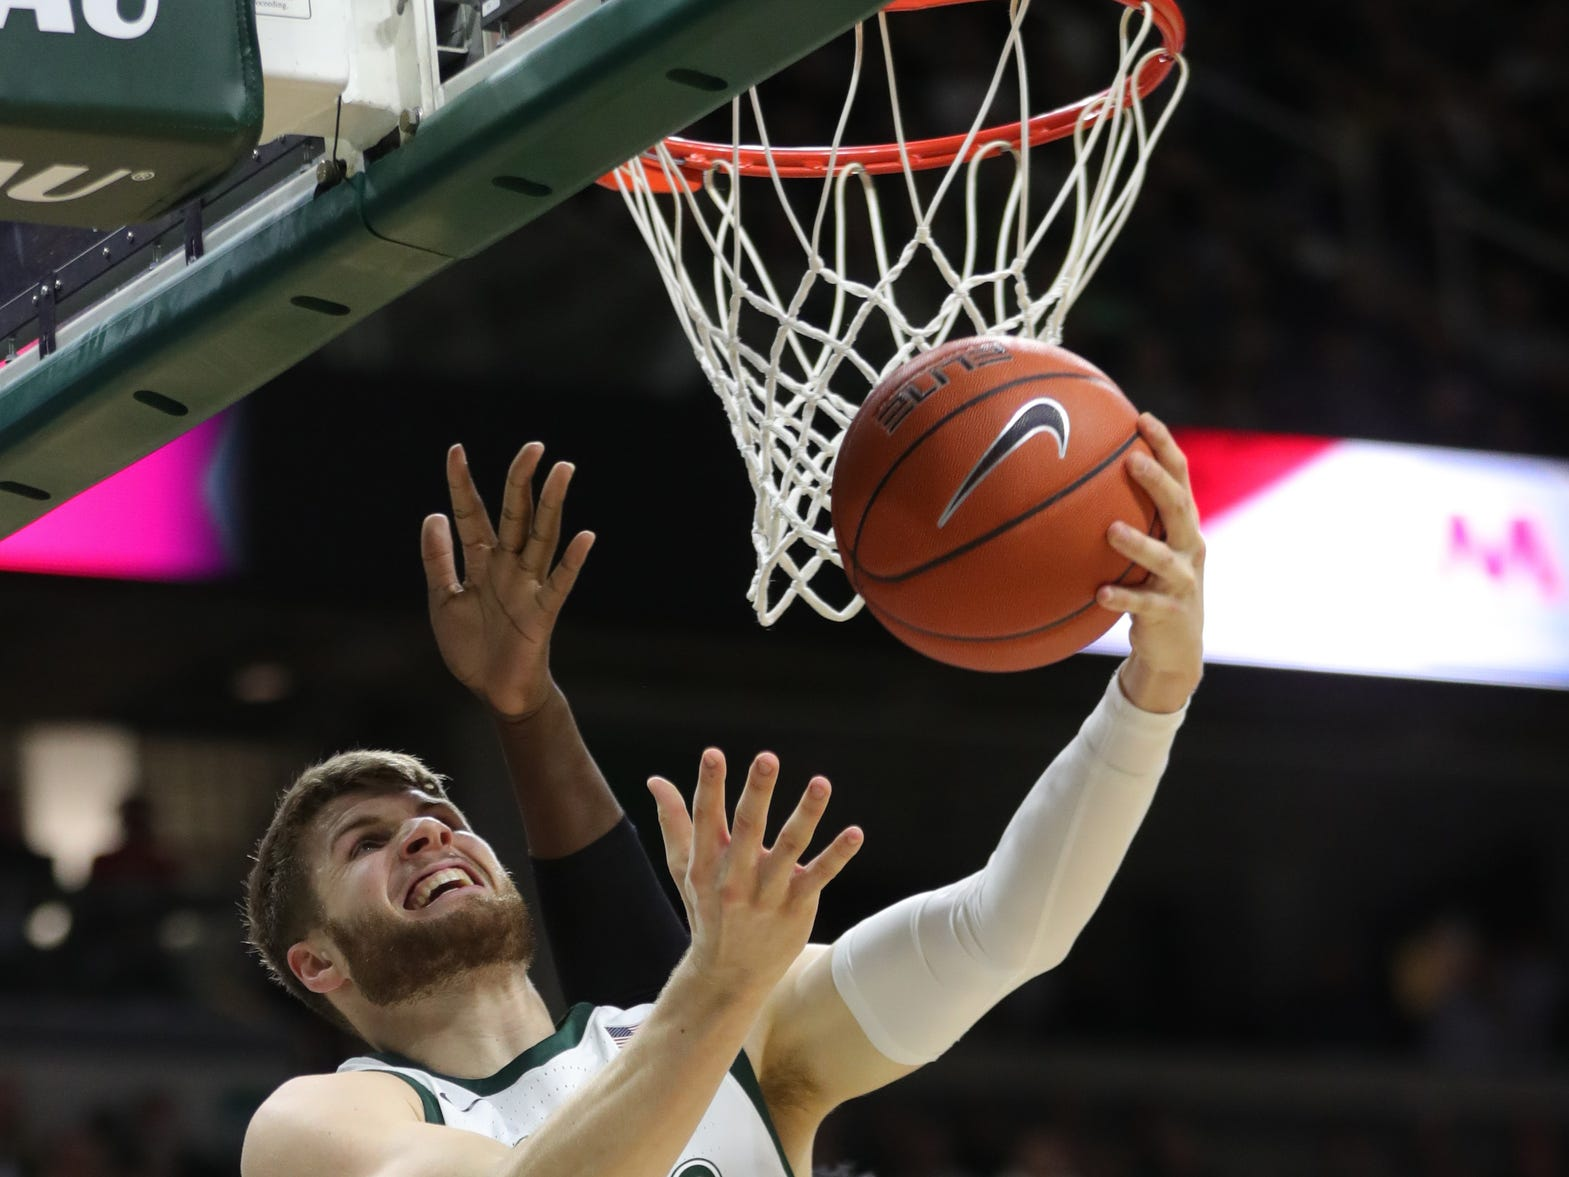 Michigan State guard Kyle Ahrens scores against Purdue forward Trevion Williams during first half action Tuesday, Jan. 8, 2019 at the Breslin Center in East Lansing, Mich.